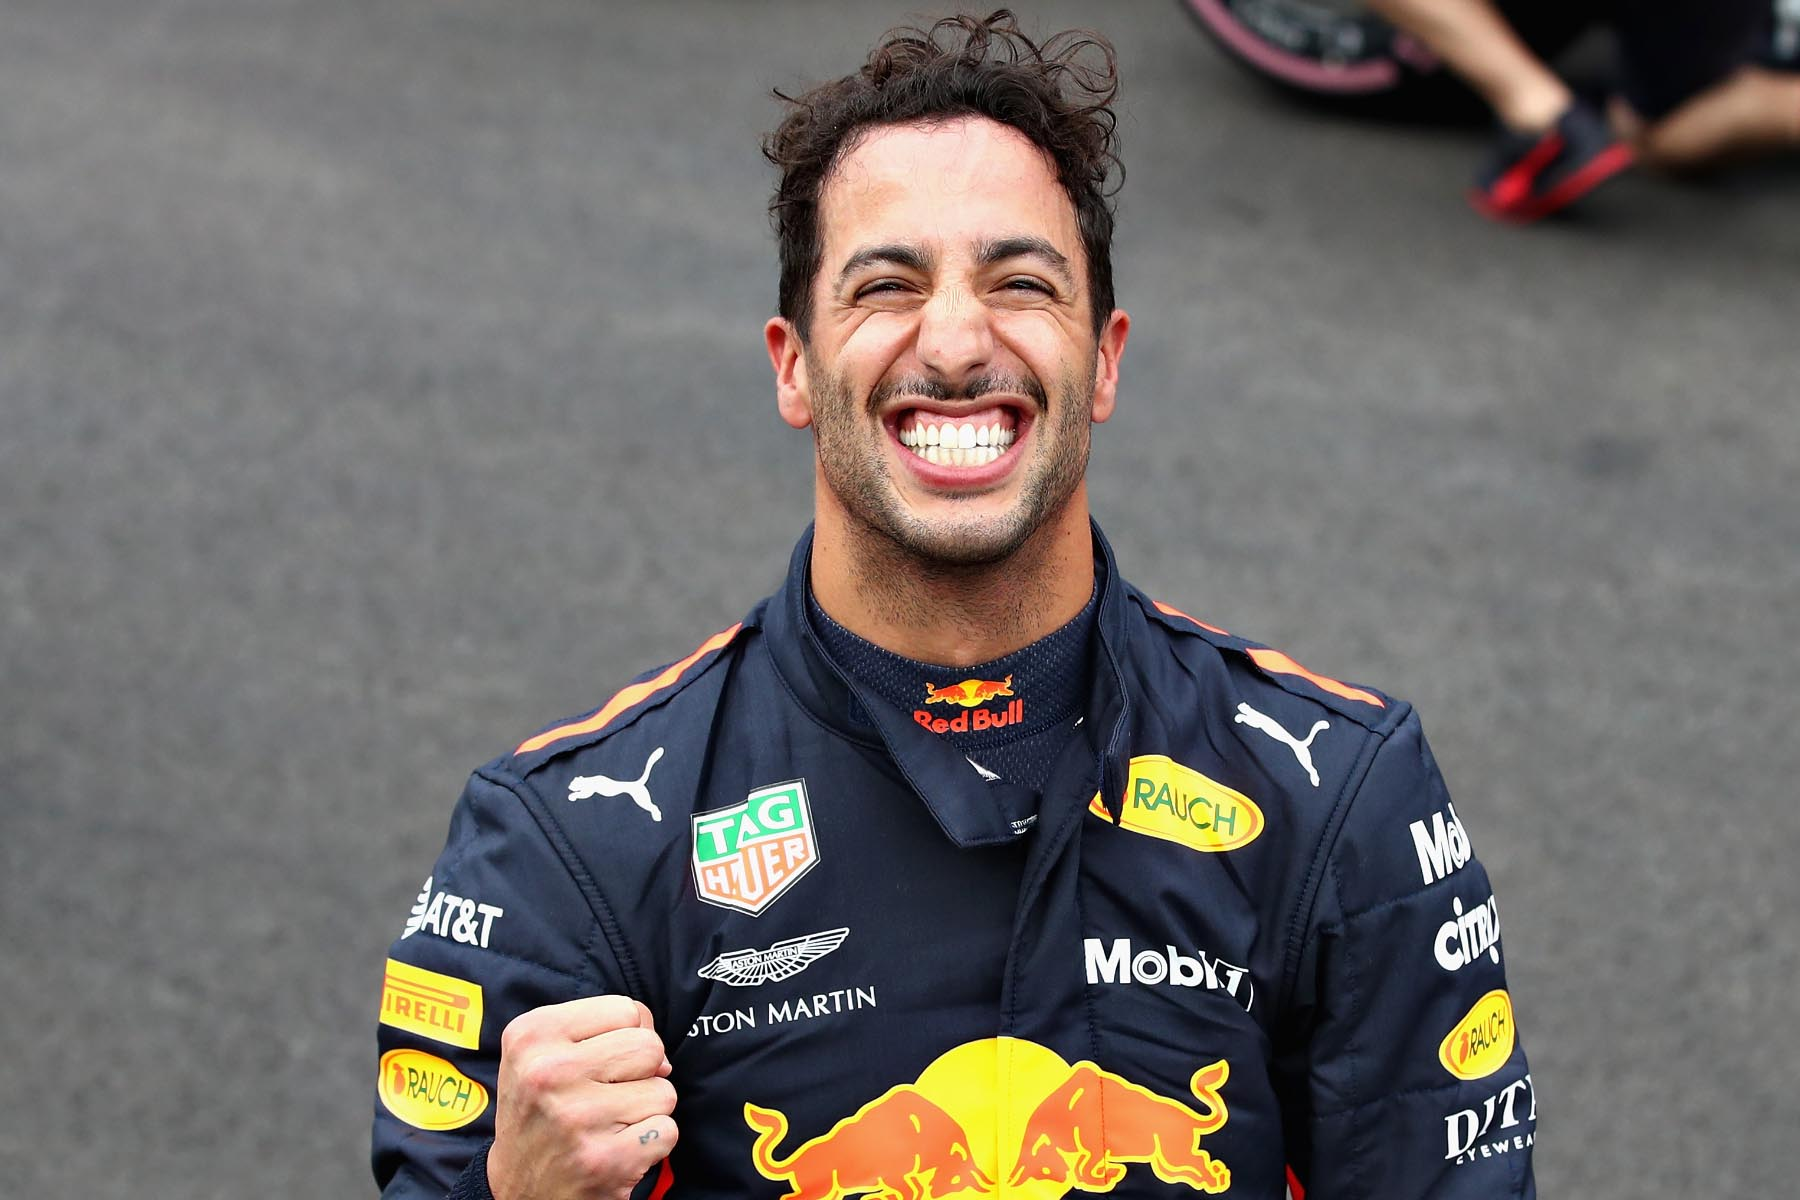 Daniel Ricciardo celebrates pole at the 2018 Mexican Grand Prix.